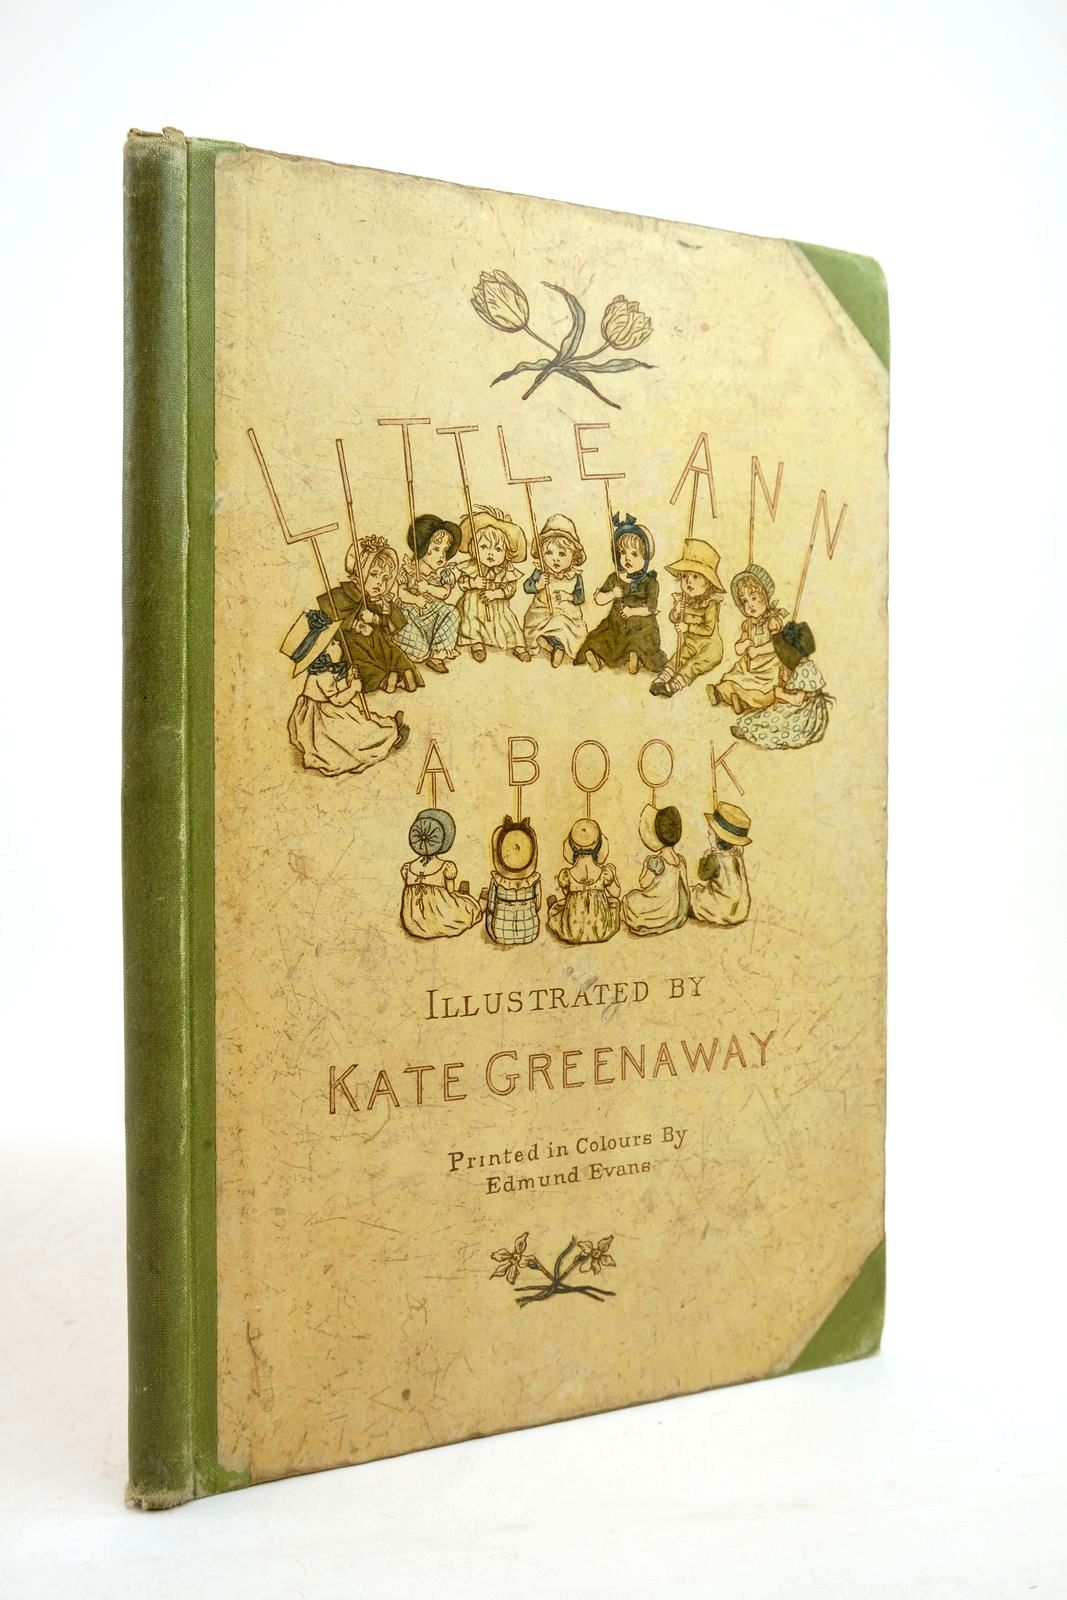 Photo of LITTLE ANN AND OTHER POEMS written by Taylor, Jane Taylor, Ann illustrated by Greenaway, Kate published by Frederick Warne & Co. (STOCK CODE: 2134709)  for sale by Stella & Rose's Books